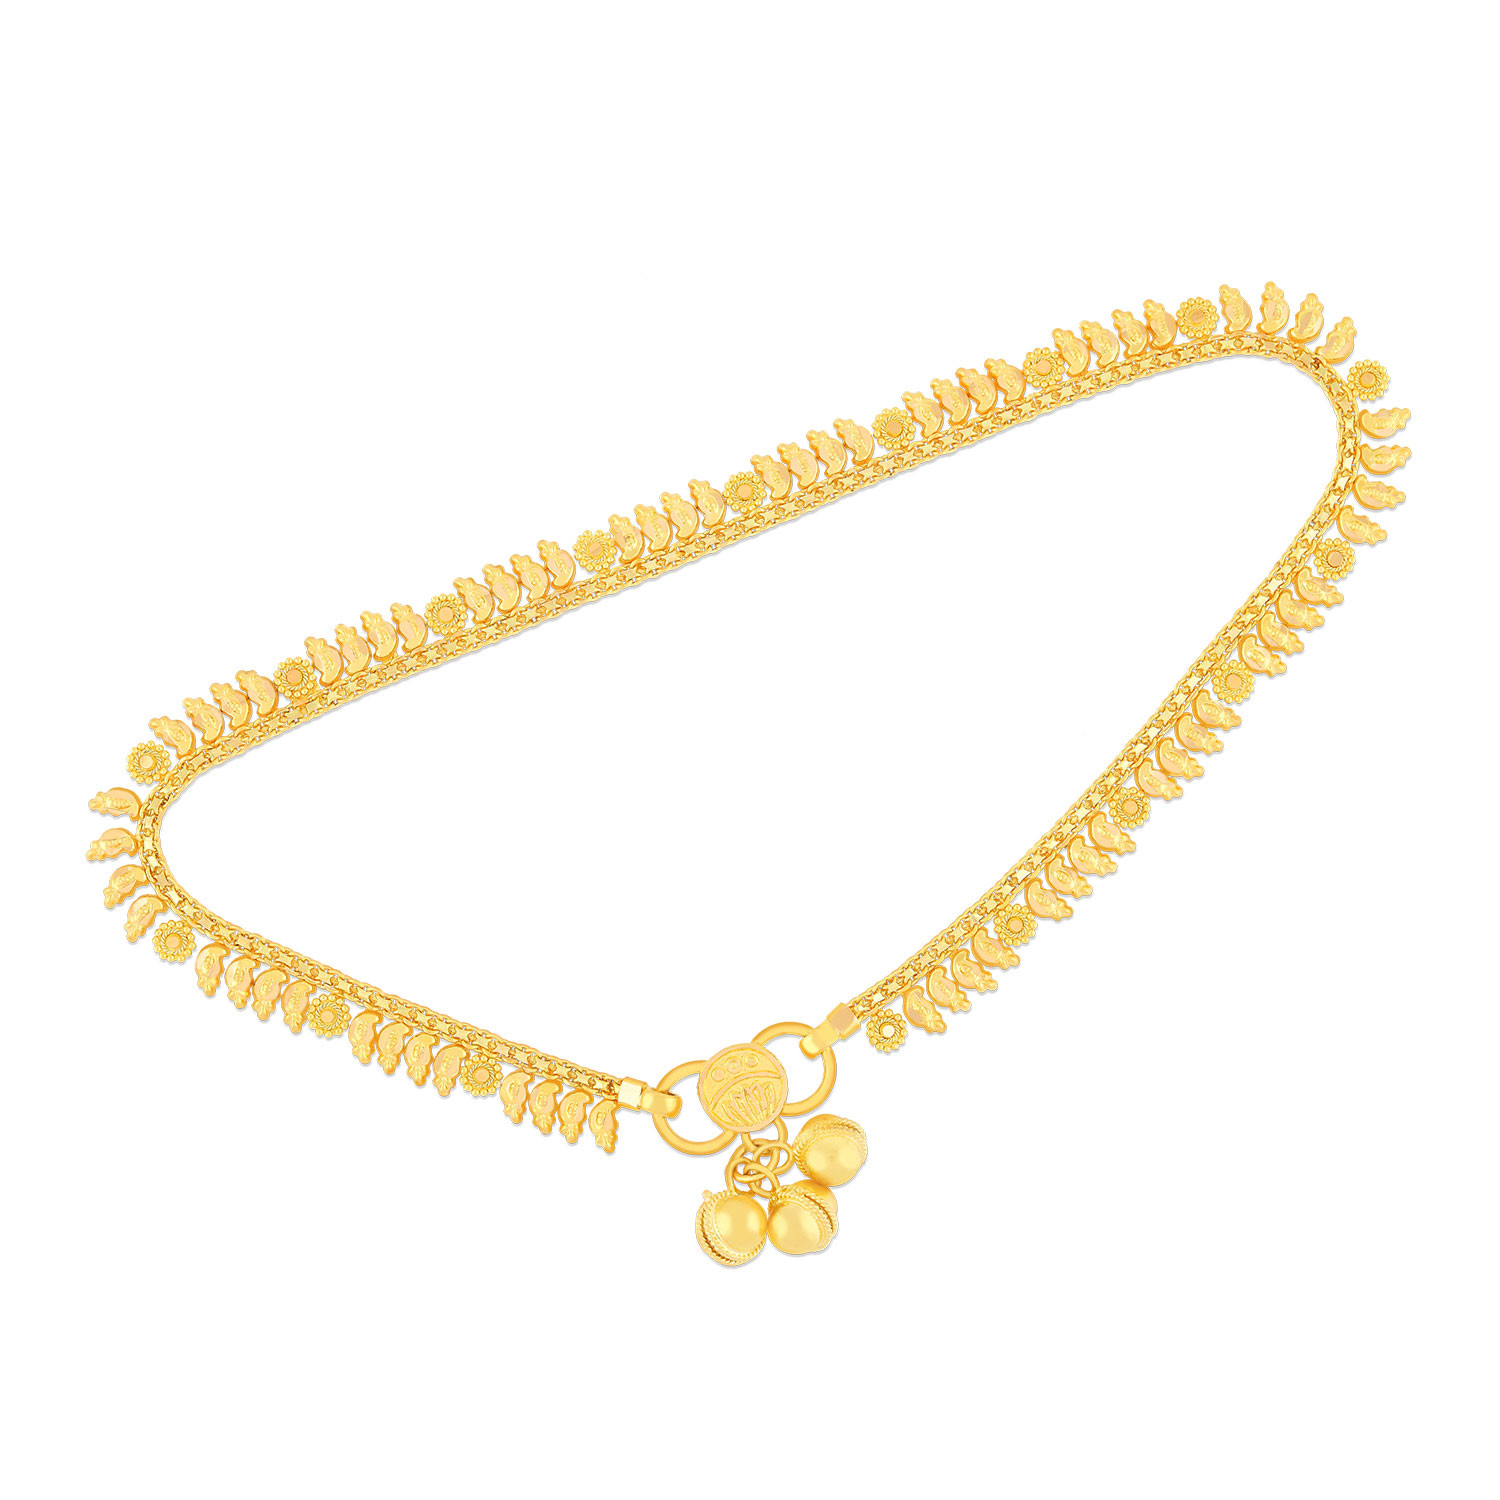 product yellow just bracelet than a gold description rings more anklets anklet